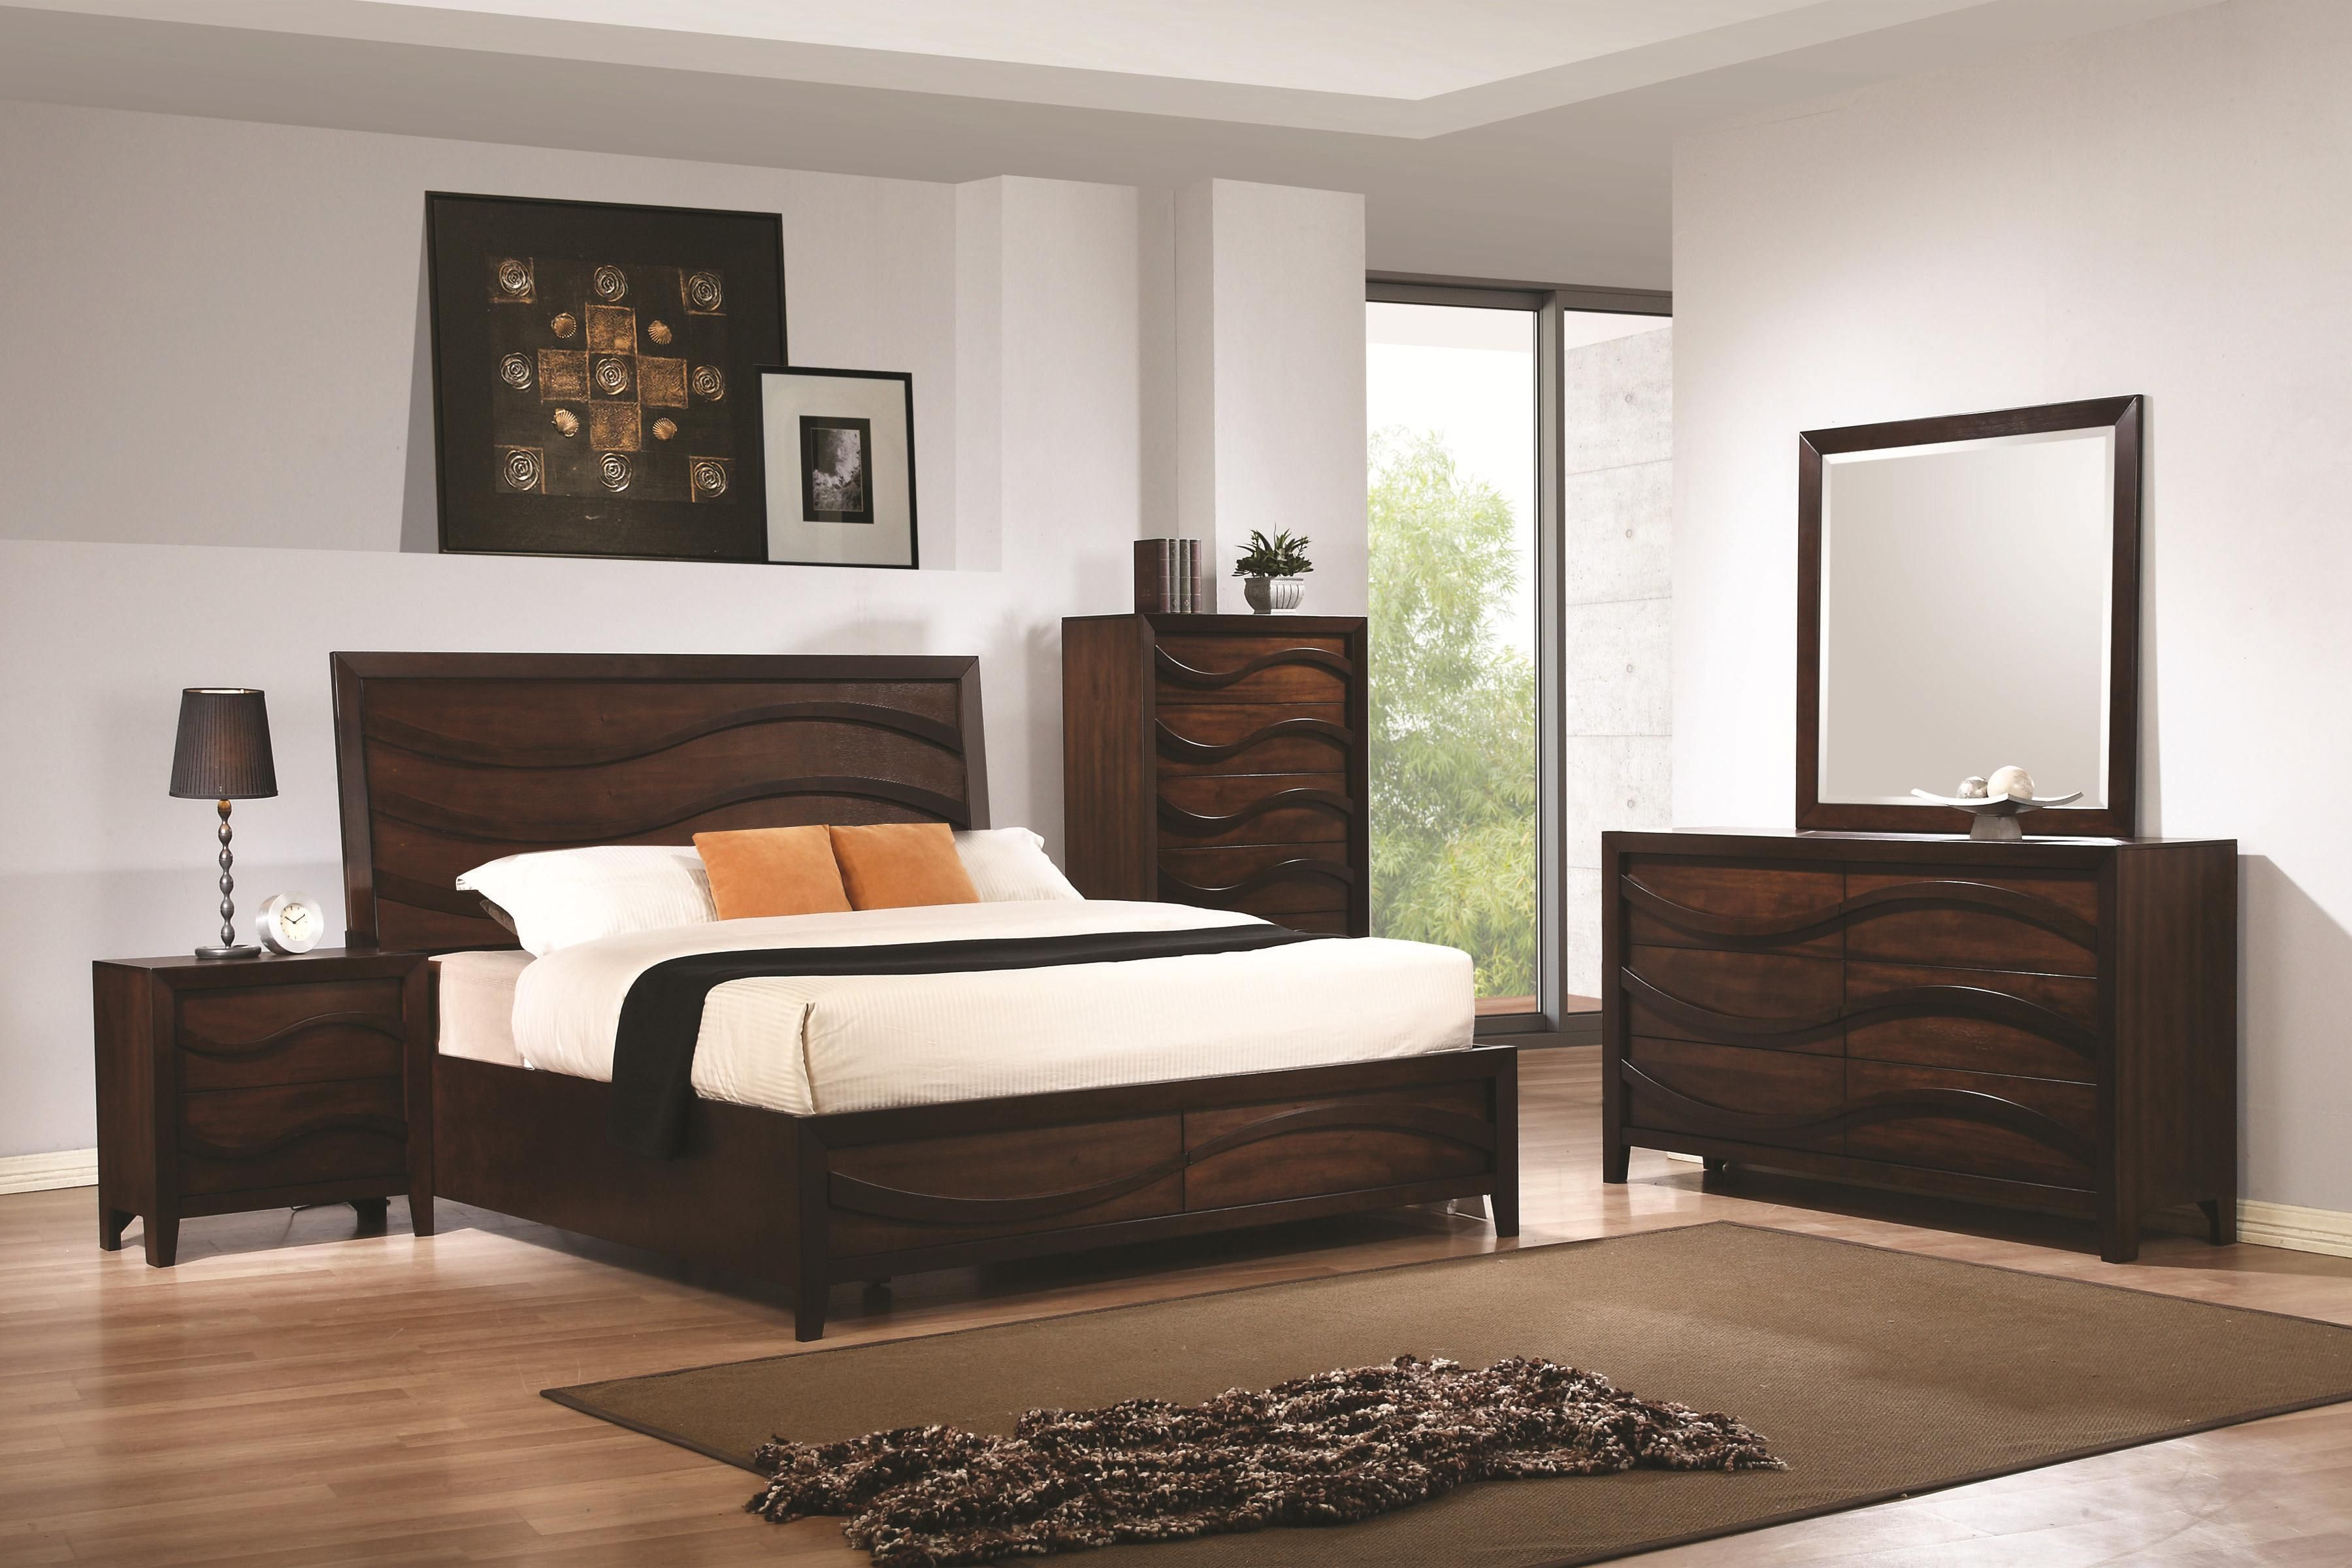 Coaster Loncar King Bed with Wave Moulding Underground Furniture